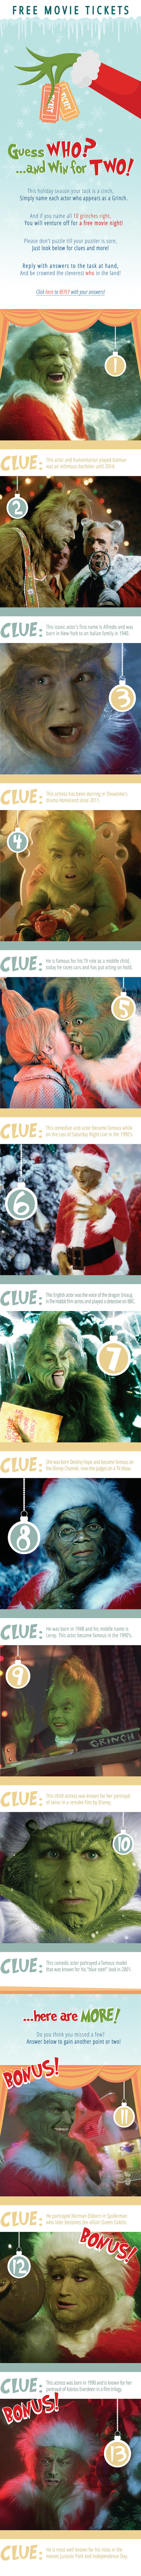 Can you guess who is the GRINCH?